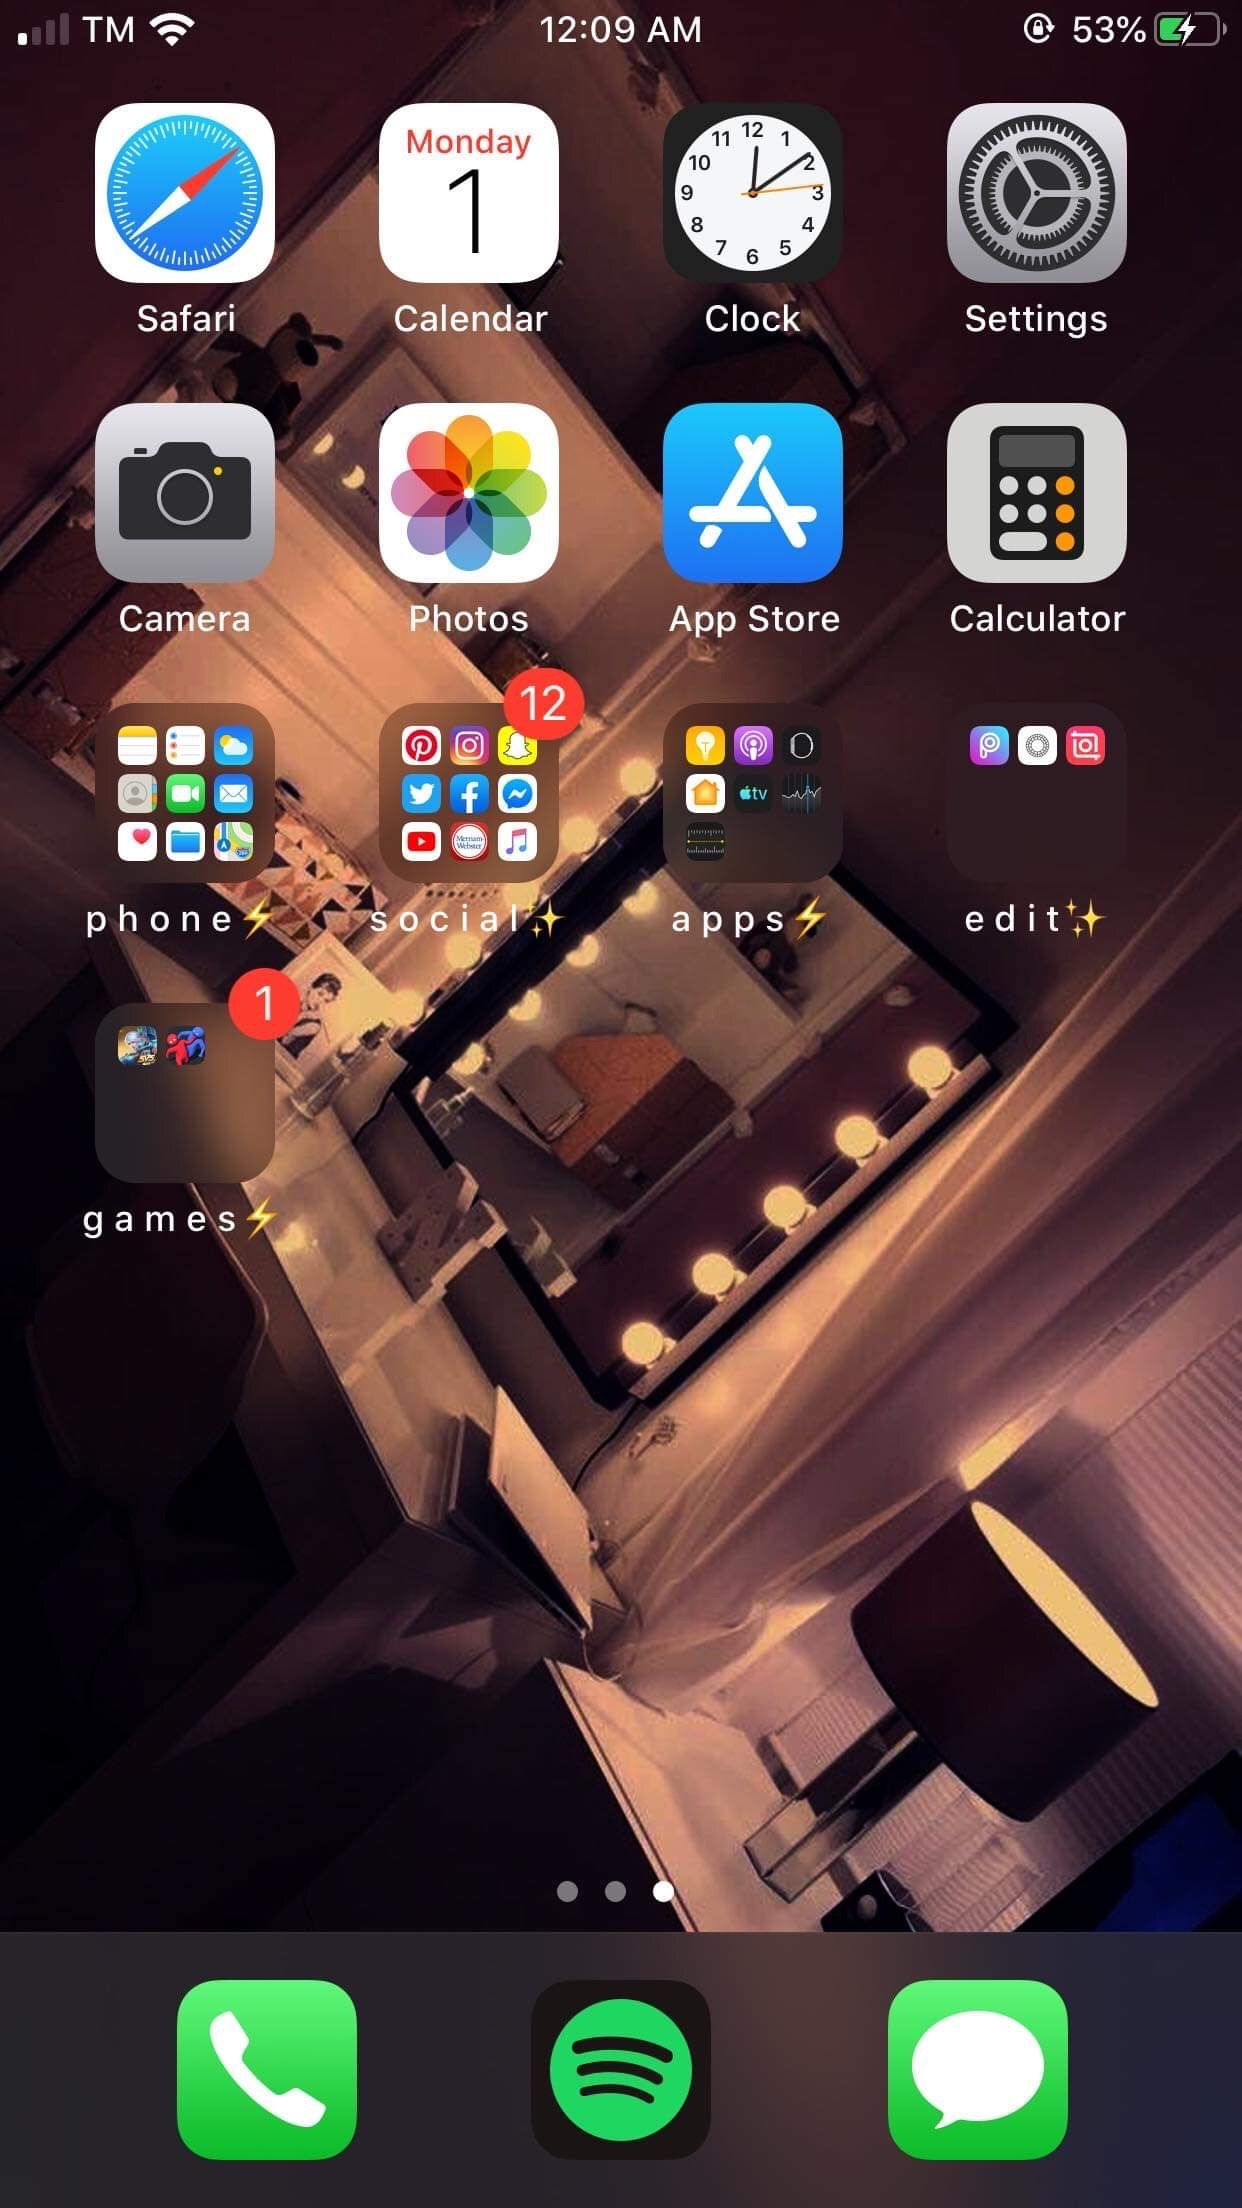 Pin By Maram On Iphone App Layout Iphone Organization Iphone Home Screen Layout Homescreen Iphone